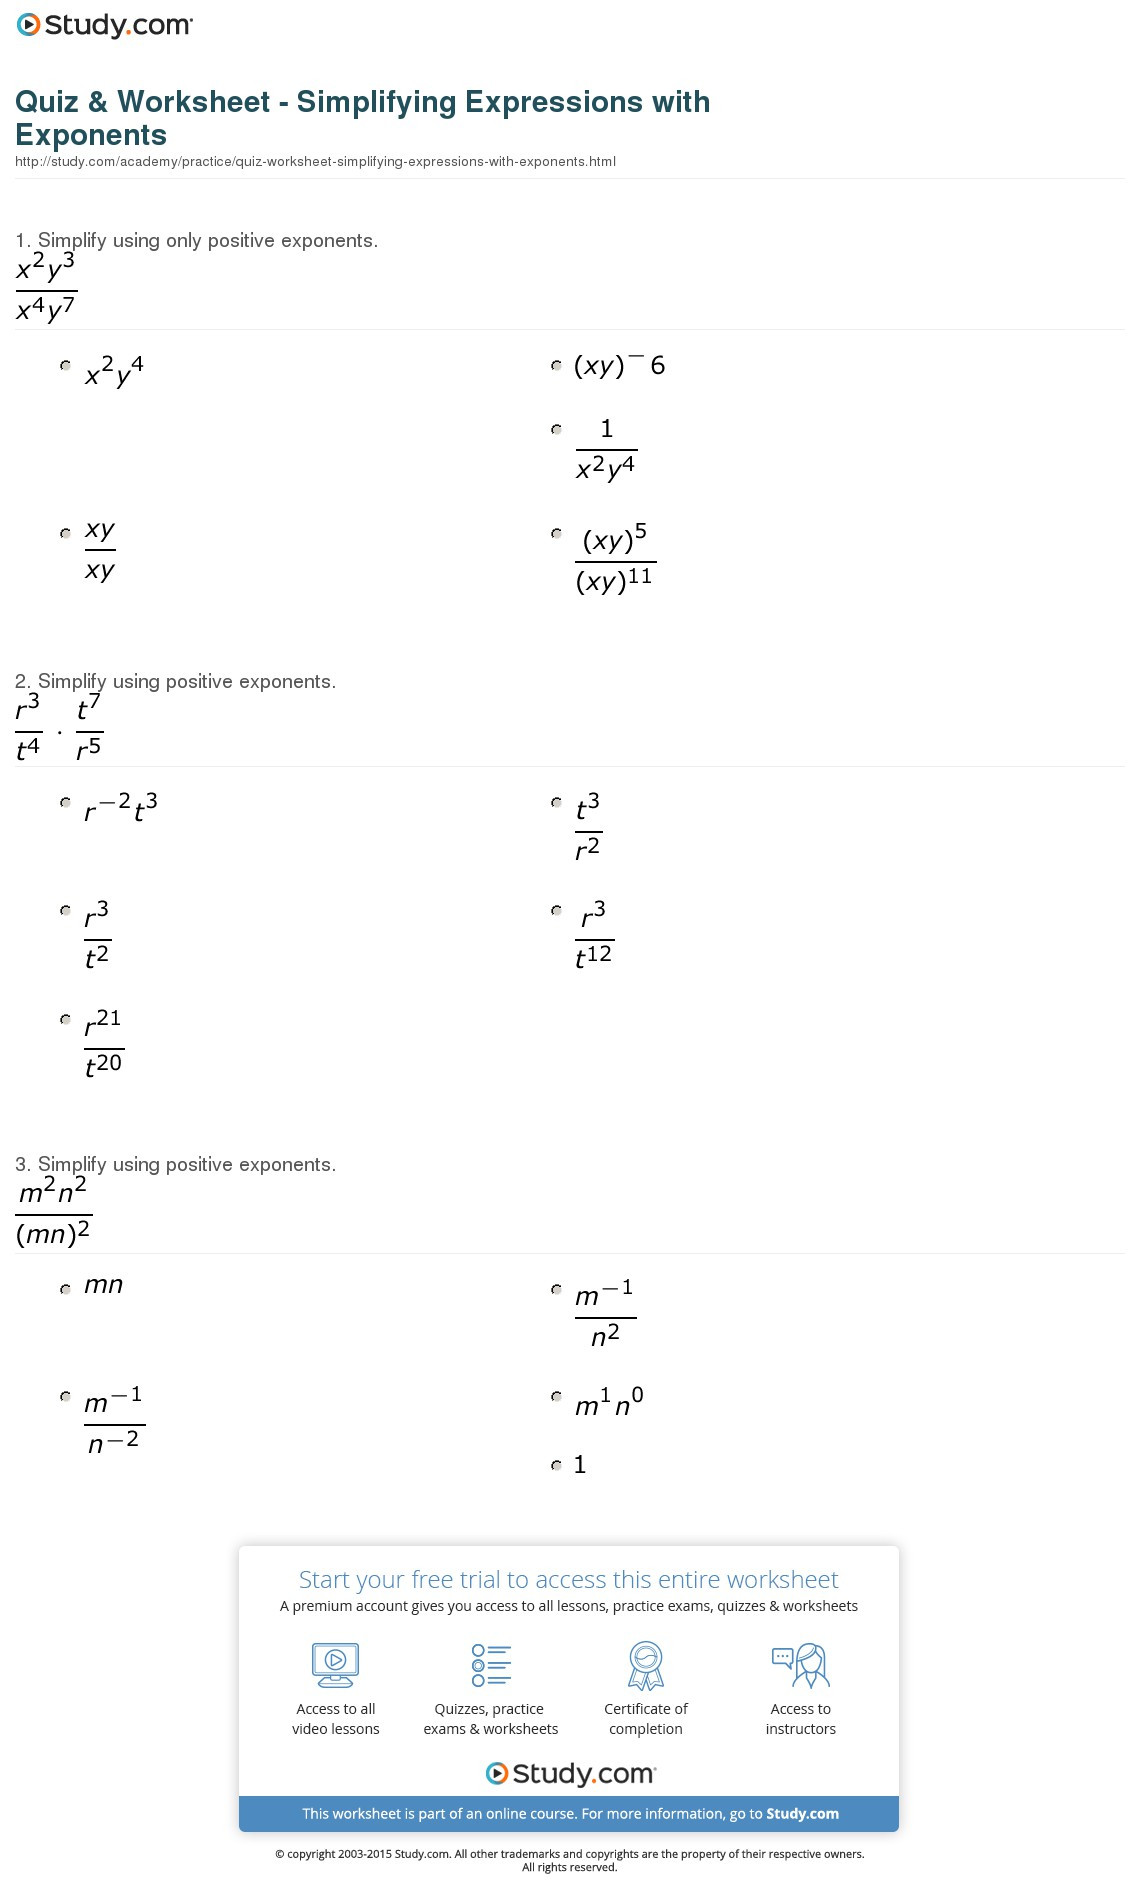 Simplifying Expressions Worksheet with Answers Luxury Simplifying Expressions Worksheet